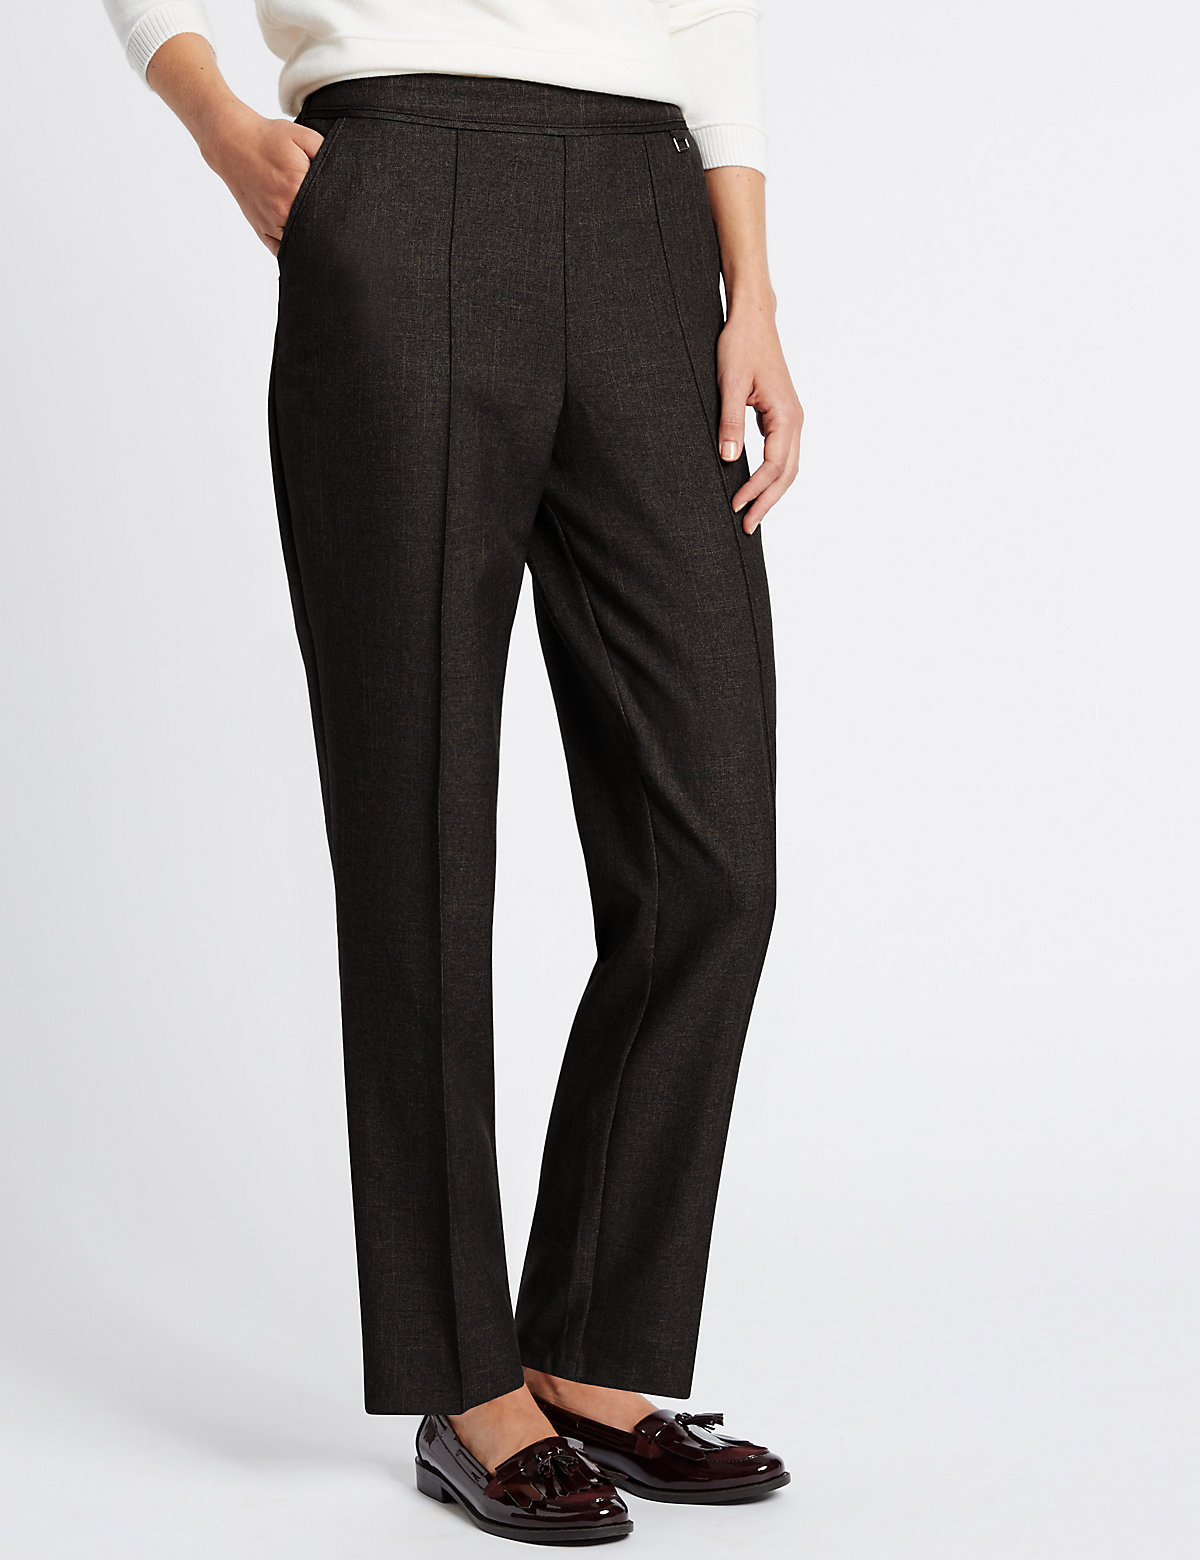 Classic Cross Hatch Straight Leg Trousers